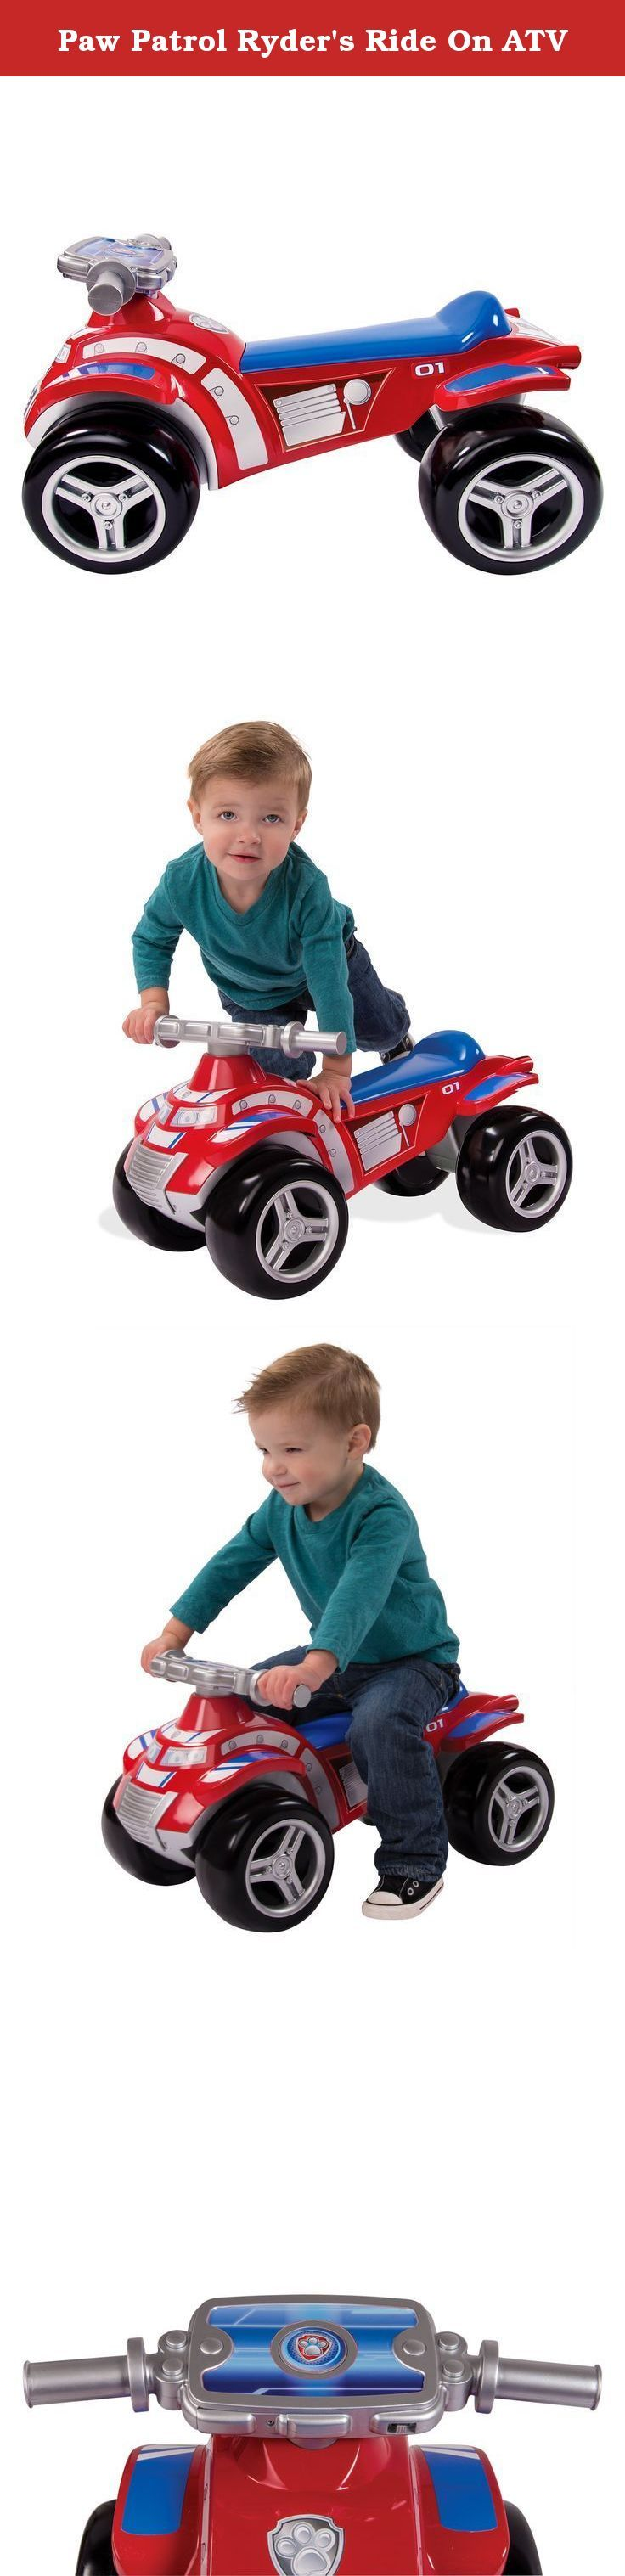 Paw Patrol Ryder's Ride On ATV. No job is too big, no pup is too small! Now kids can join the Paw Patrol Pups on a Paw Patrol Mission with Ryder's Ride On ATV! Just like in the show they can race to an emergency with the pups. It's as simple as sit, push and play! Kids can push themselves along with their feet as they embark on Paw Patrol missions. Whether there's a rescue mission in your backyard or you have to save Itty Bitty Kitty from a tree, they can race to the ruff-ruff rescue with...